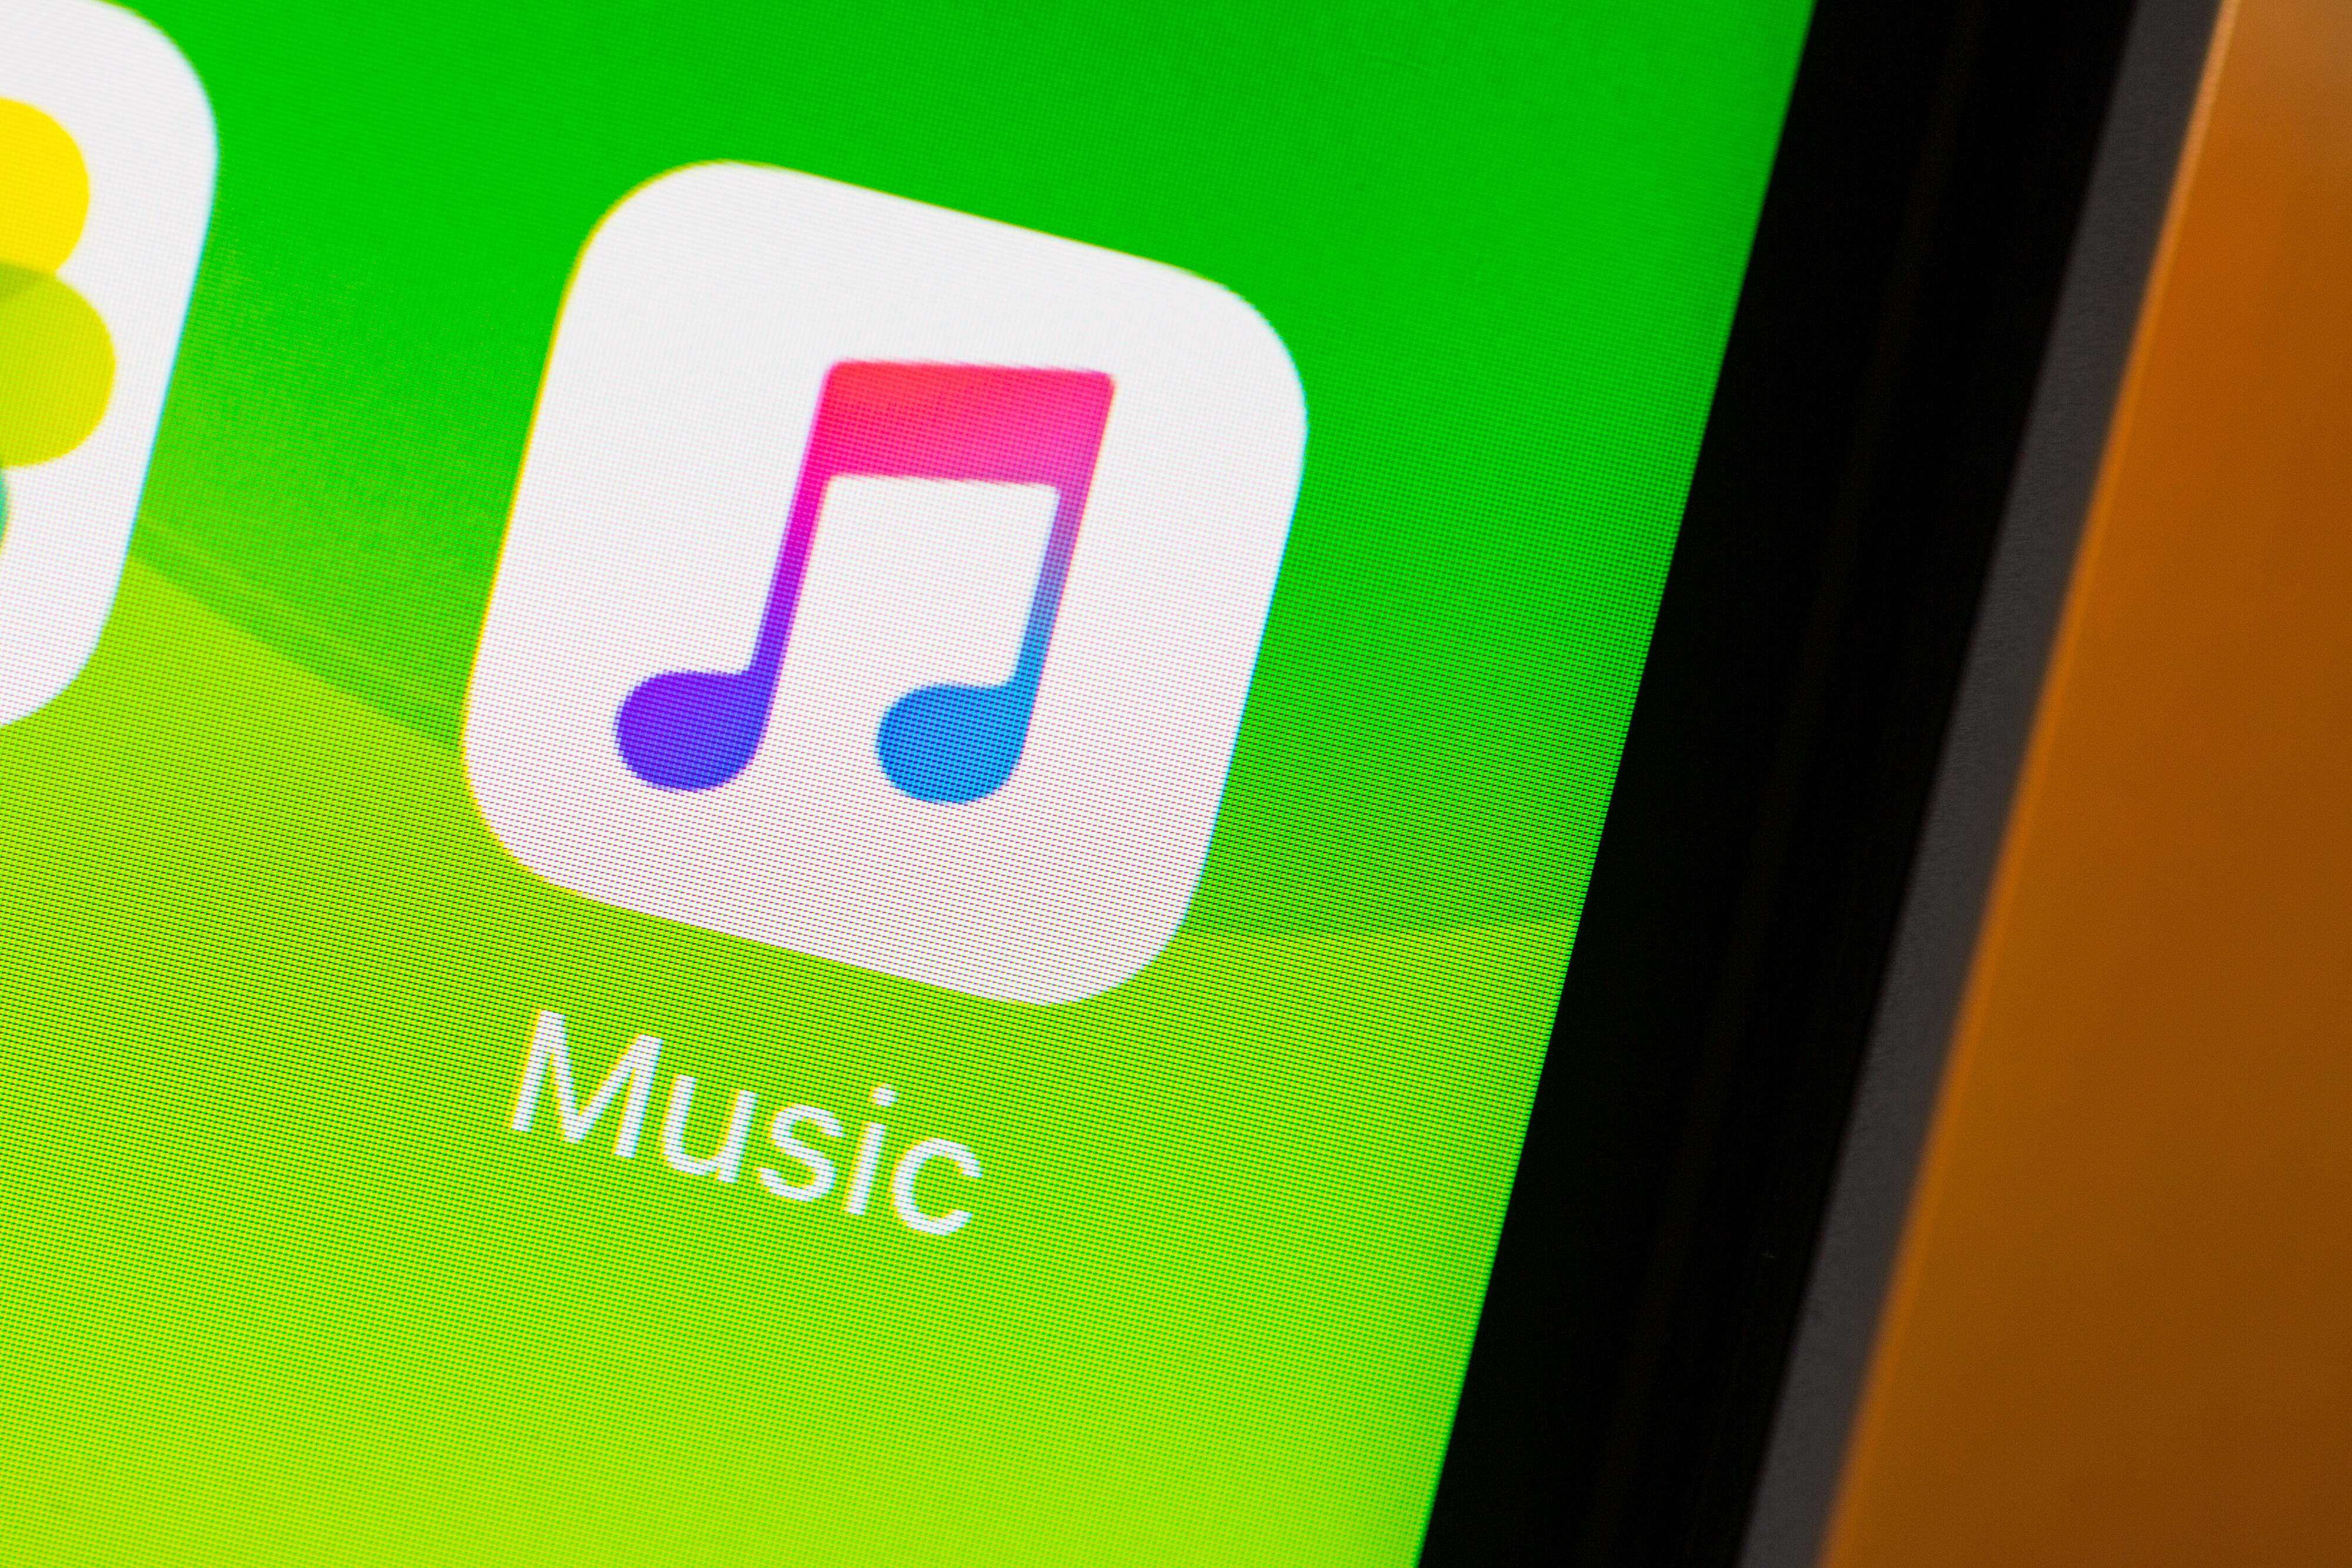 Apple Music is getting lossless and spatial audio support